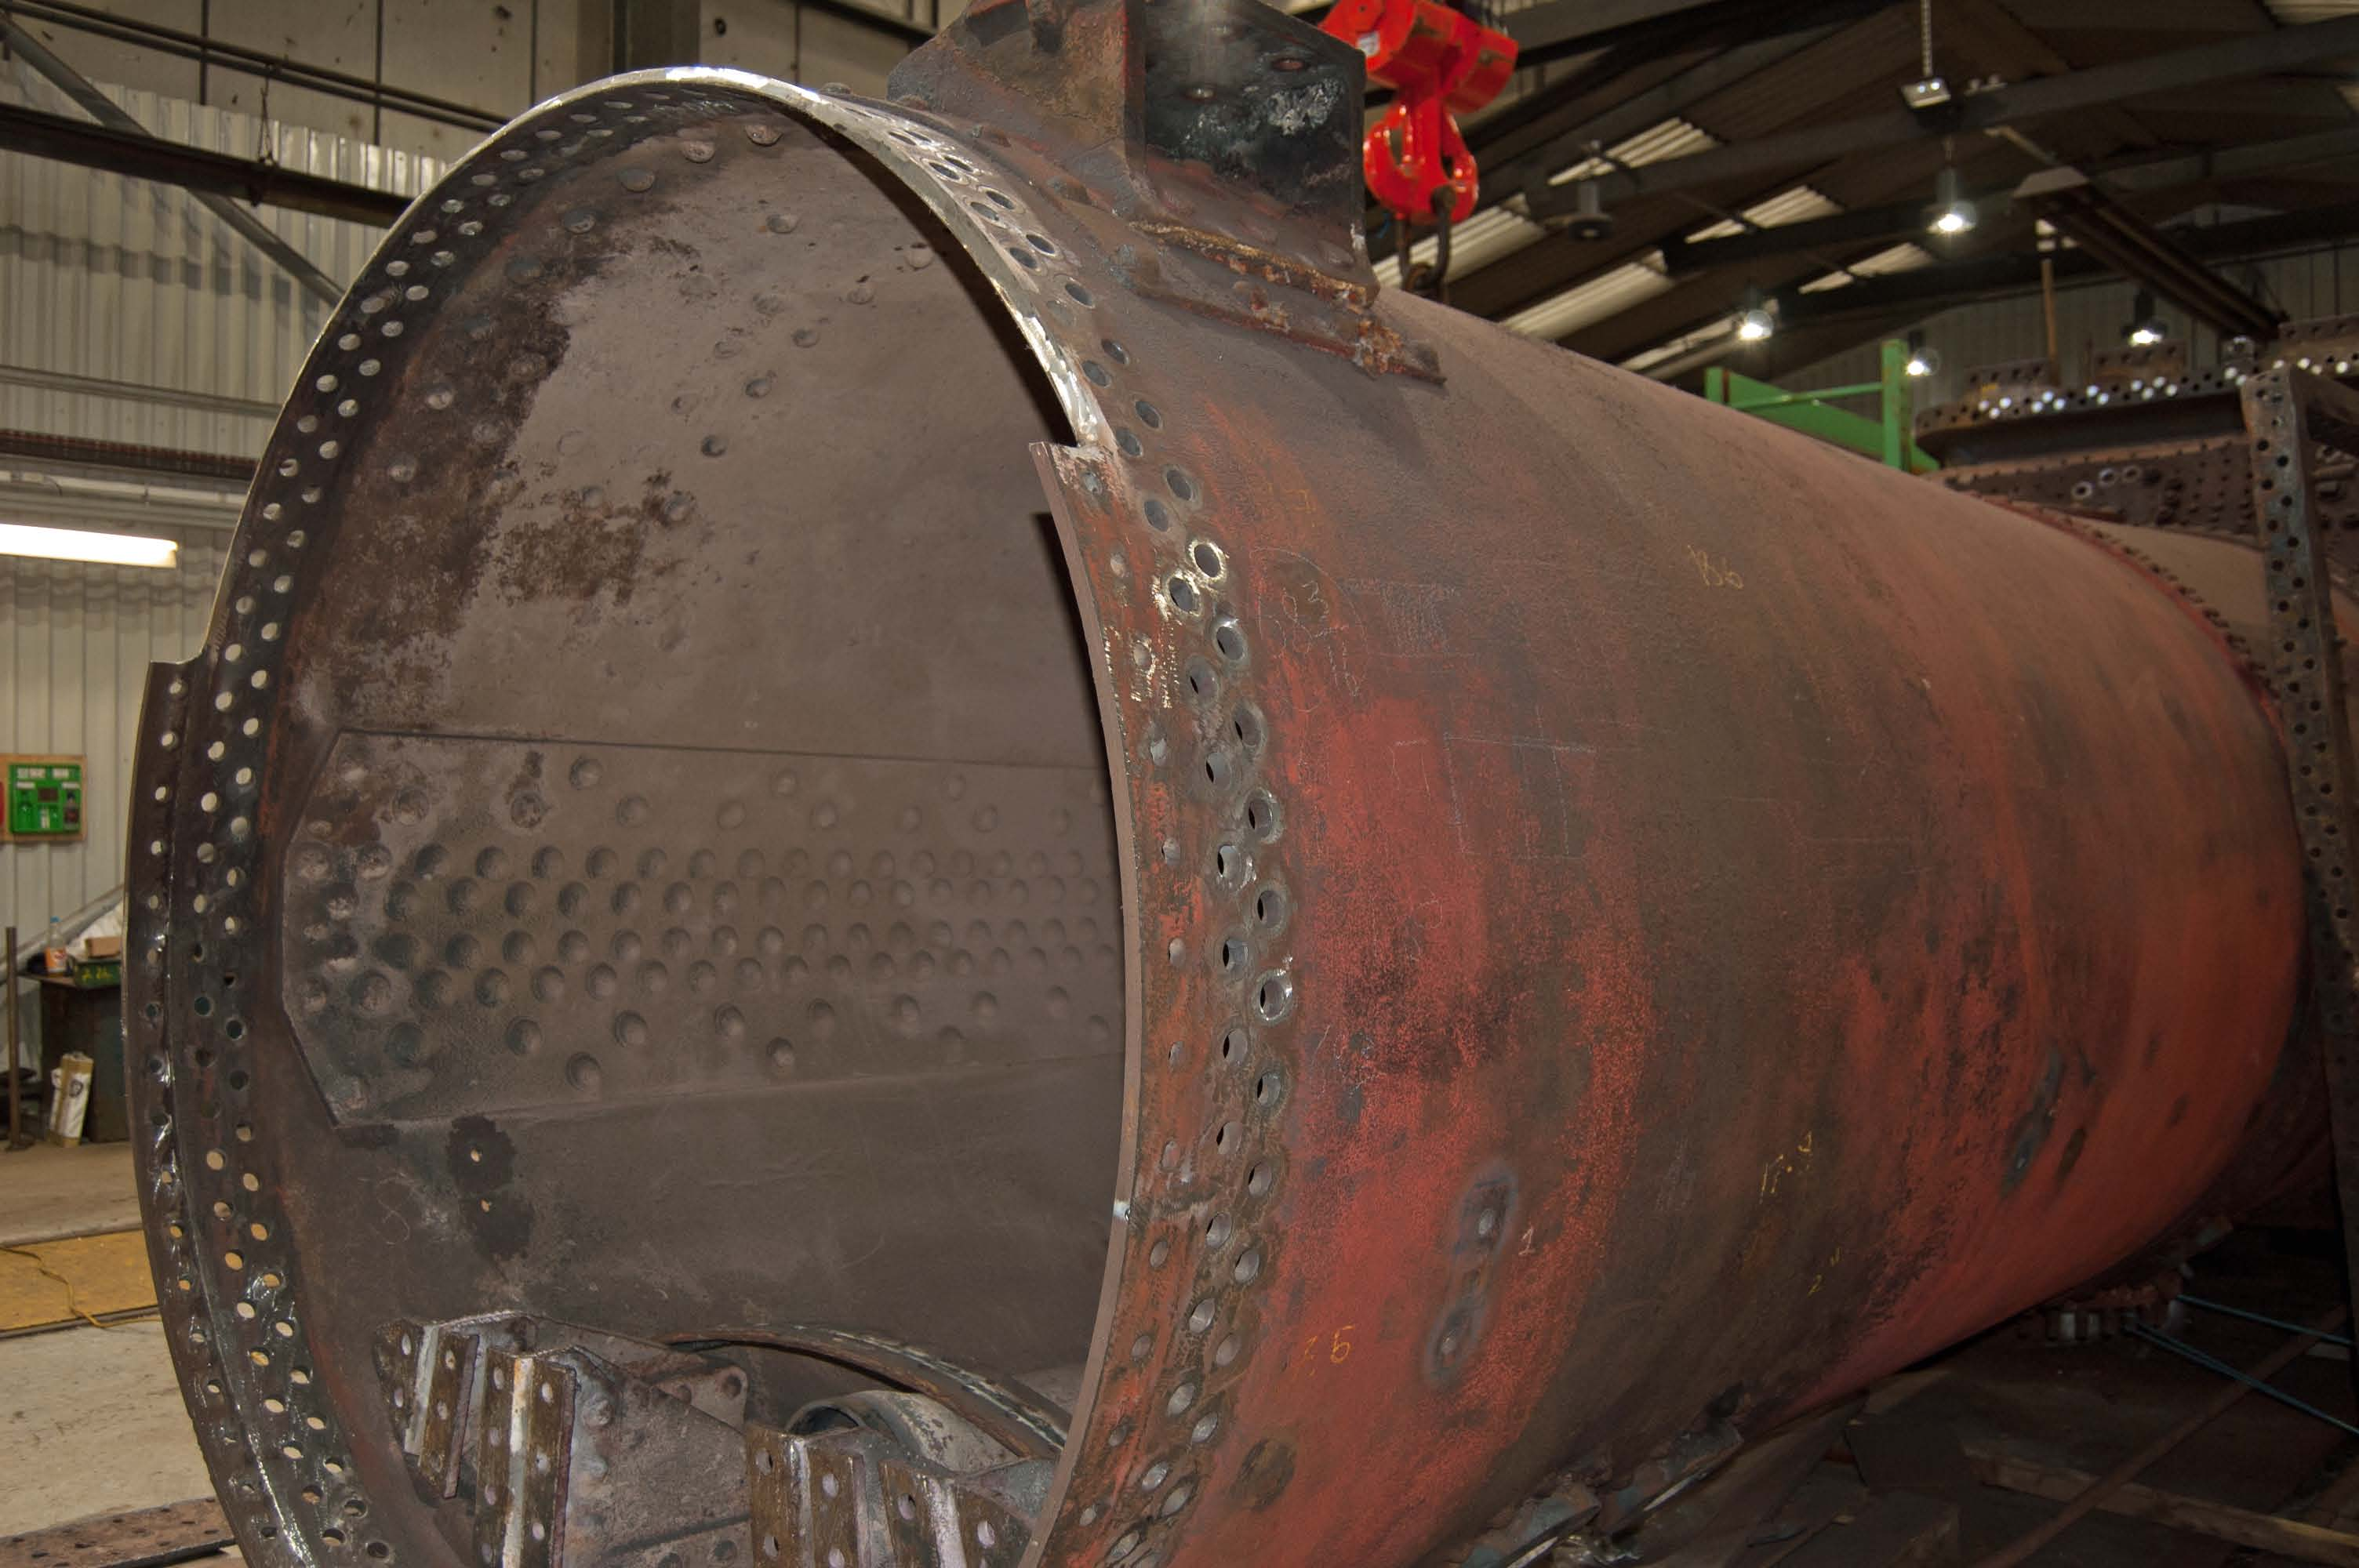 The front part of the boiler barrel, showing where some of it has been removed